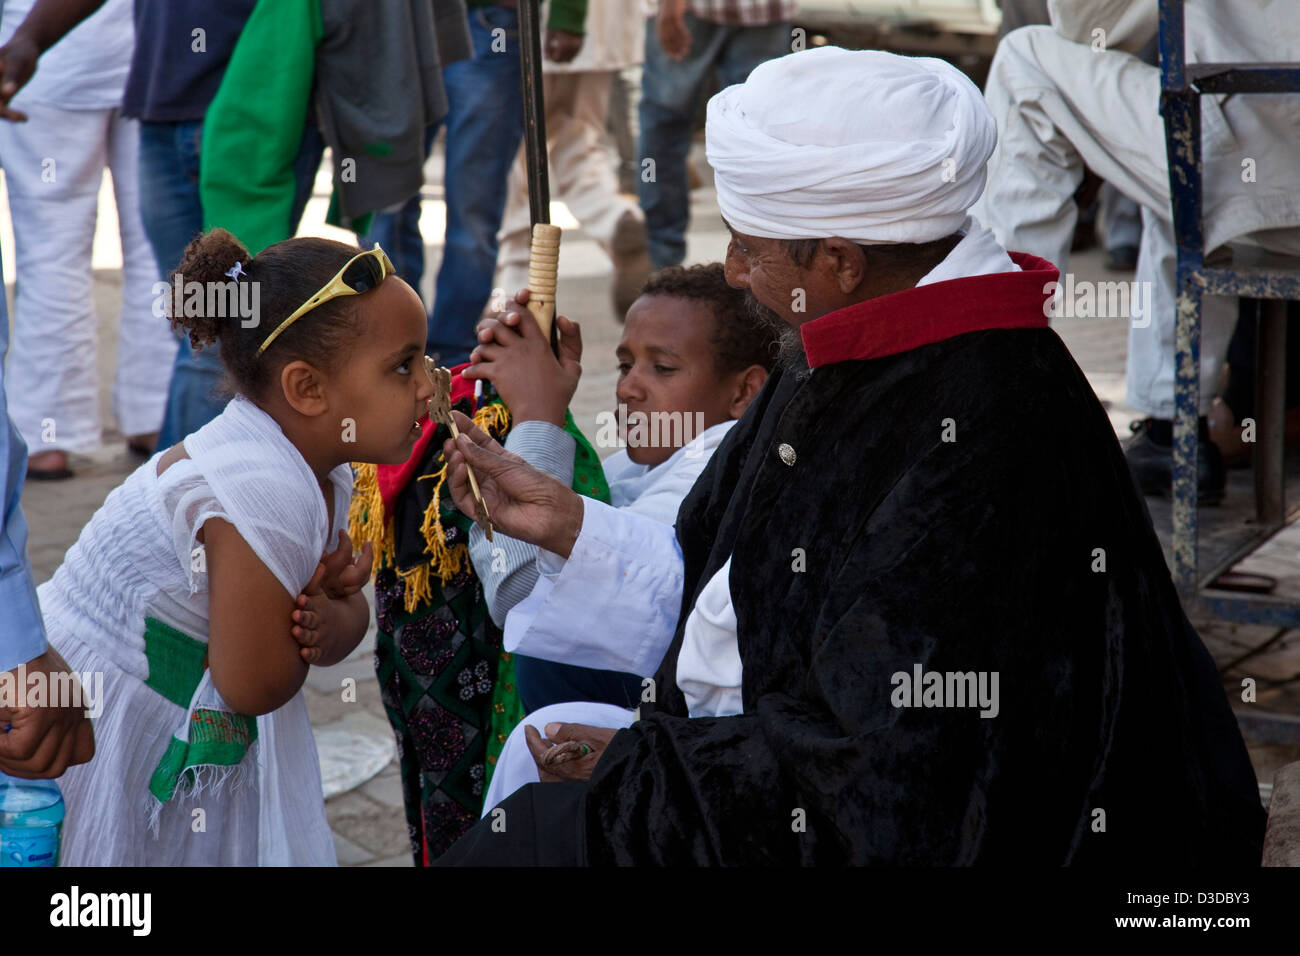 A Priest Blesses a Child In The Street During Timkat (The Festival of Epiphany), Gondar, Ethiopia - Stock Image